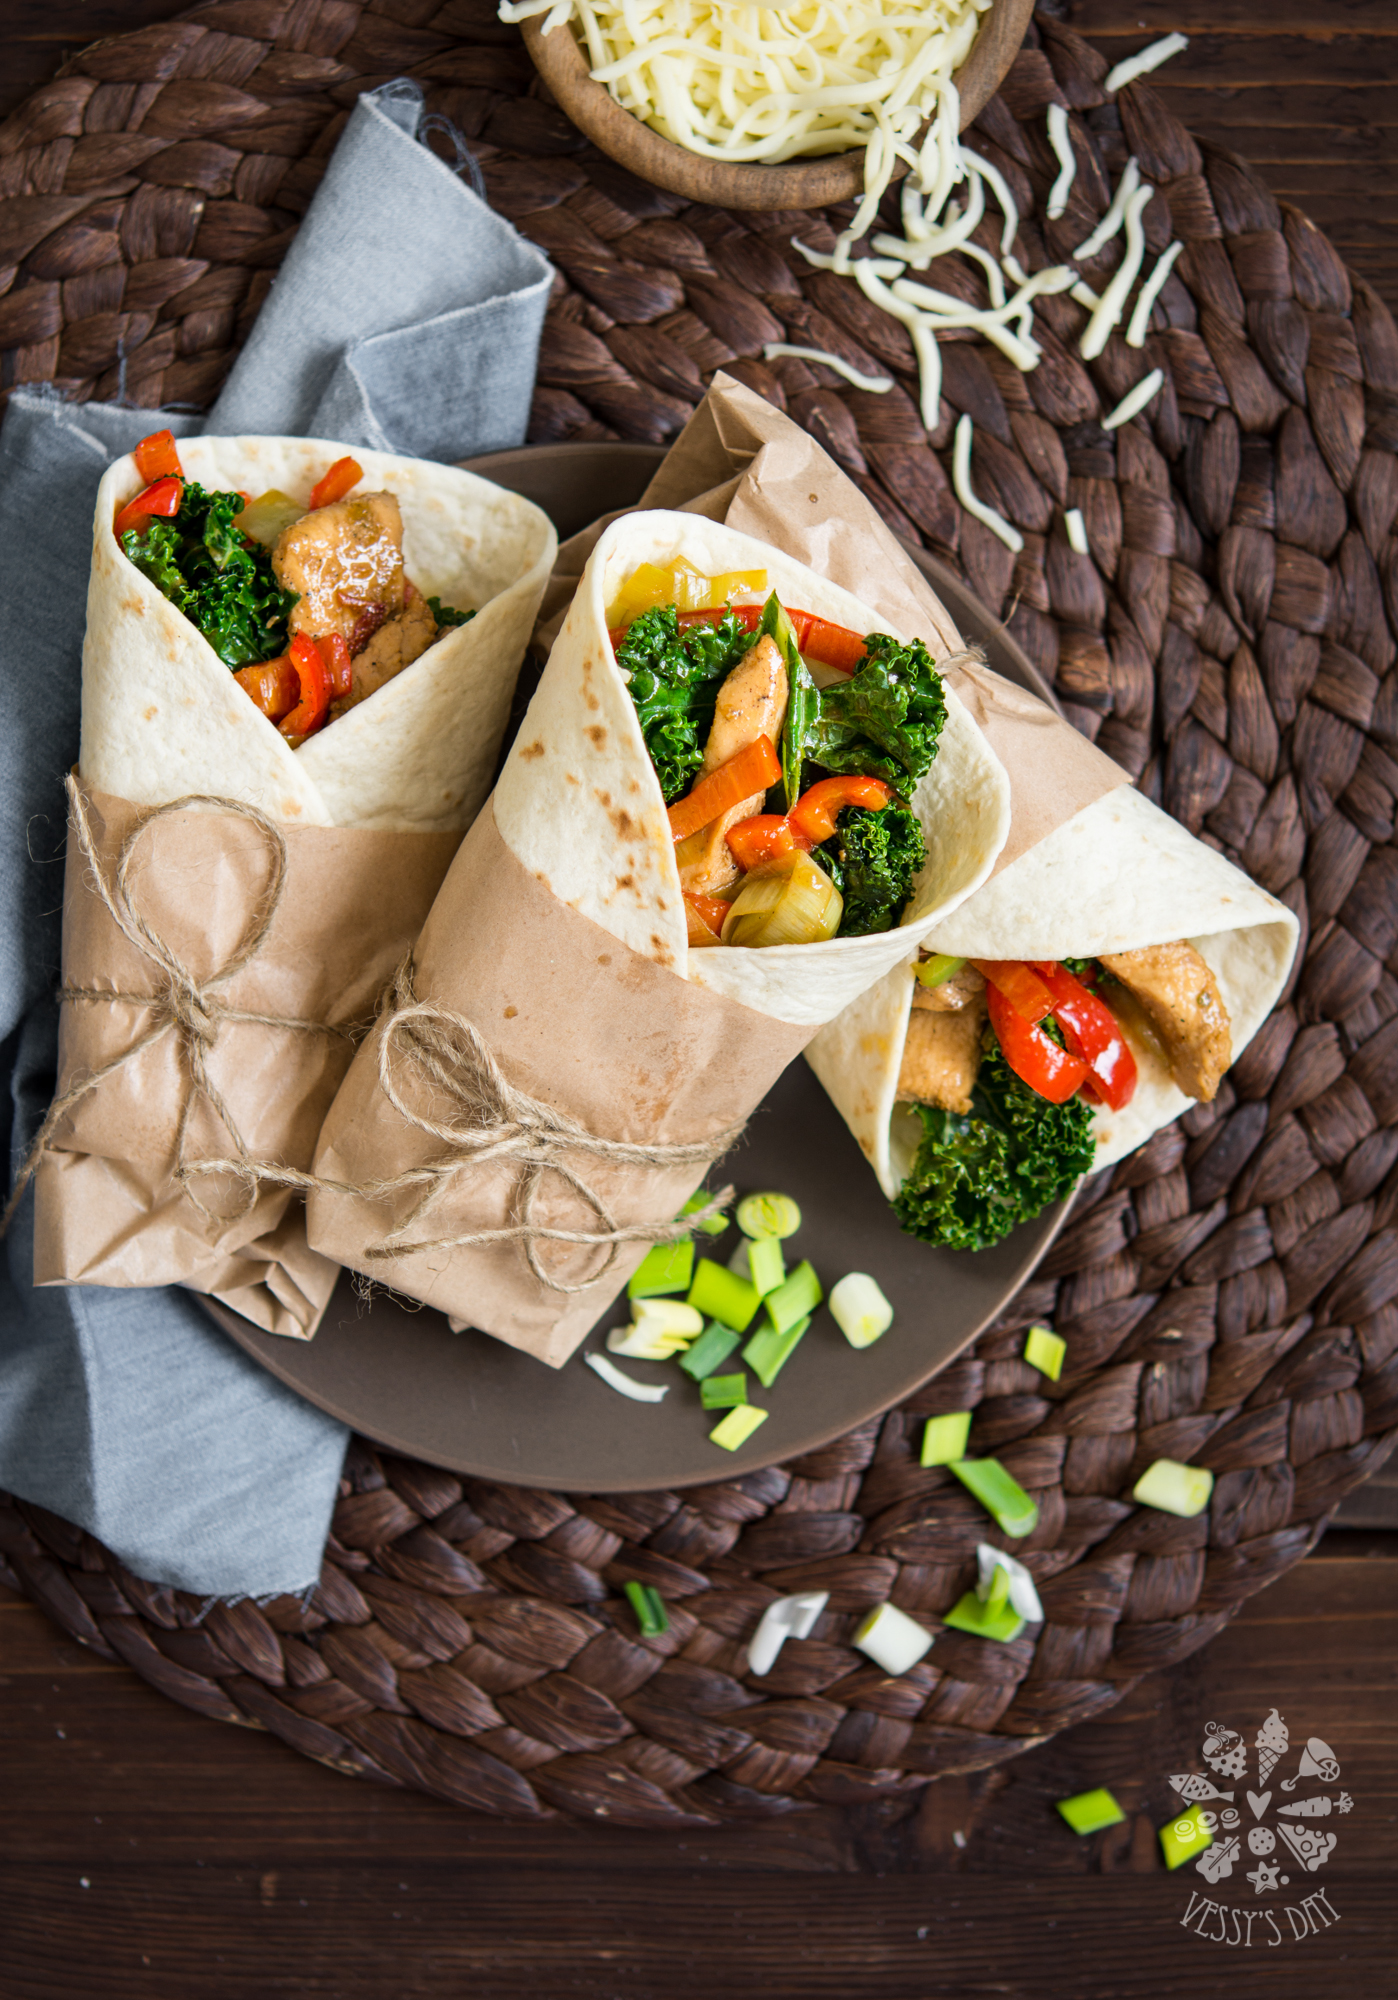 Chicken & kale tortillas